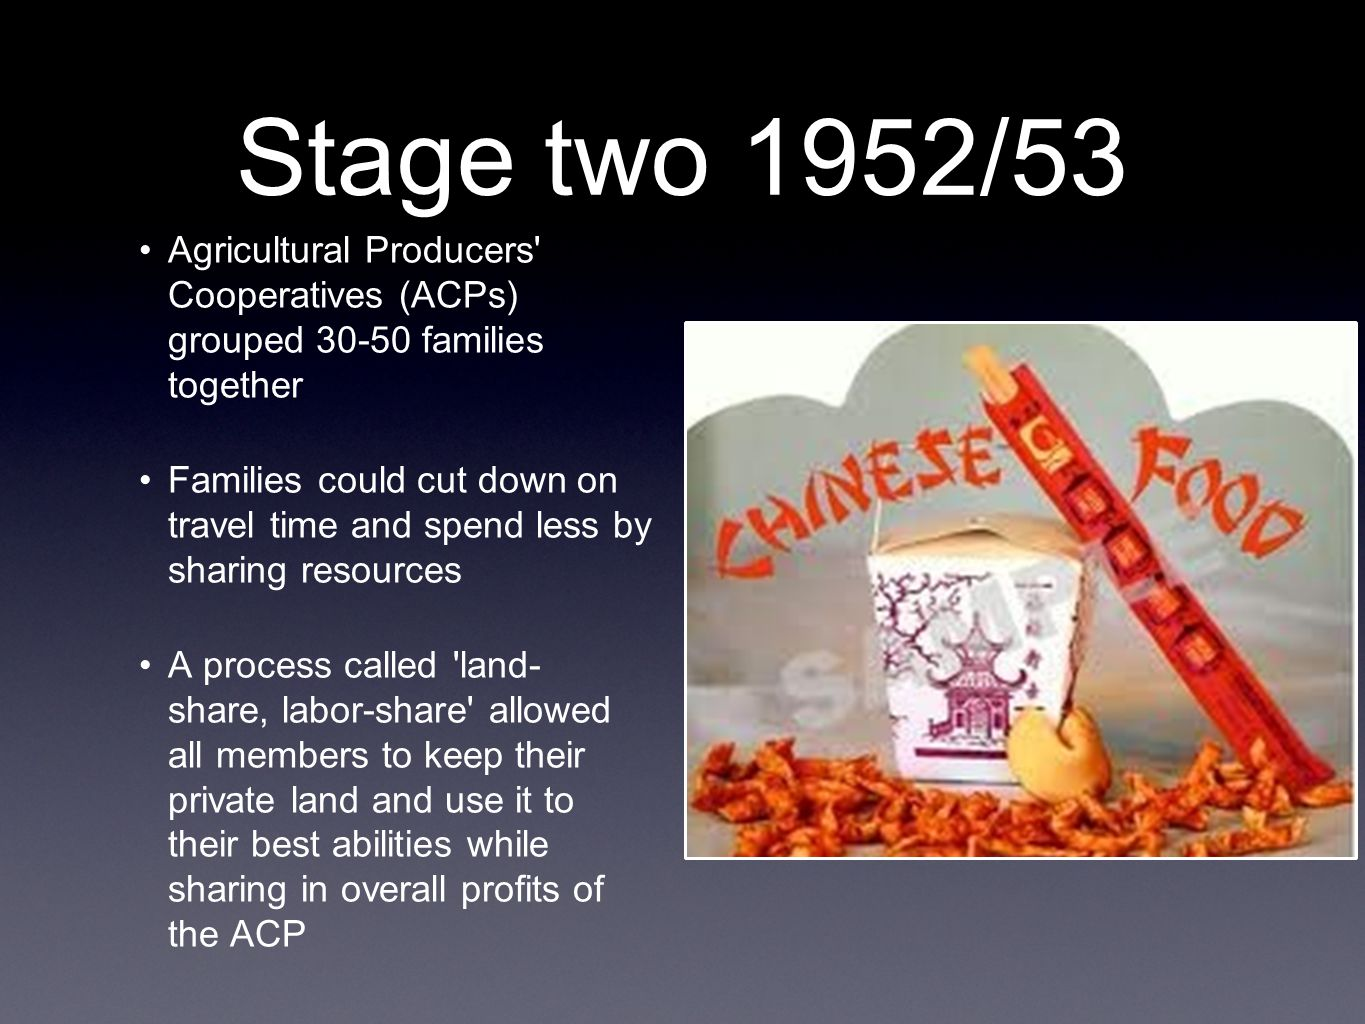 Stage two 1952/53 Agricultural Producers Cooperatives (ACPs) grouped 30-50 families together Families could cut down on travel time and spend less by sharing resources A process called land- share, labor-share allowed all members to keep their private land and use it to their best abilities while sharing in overall profits of the ACP